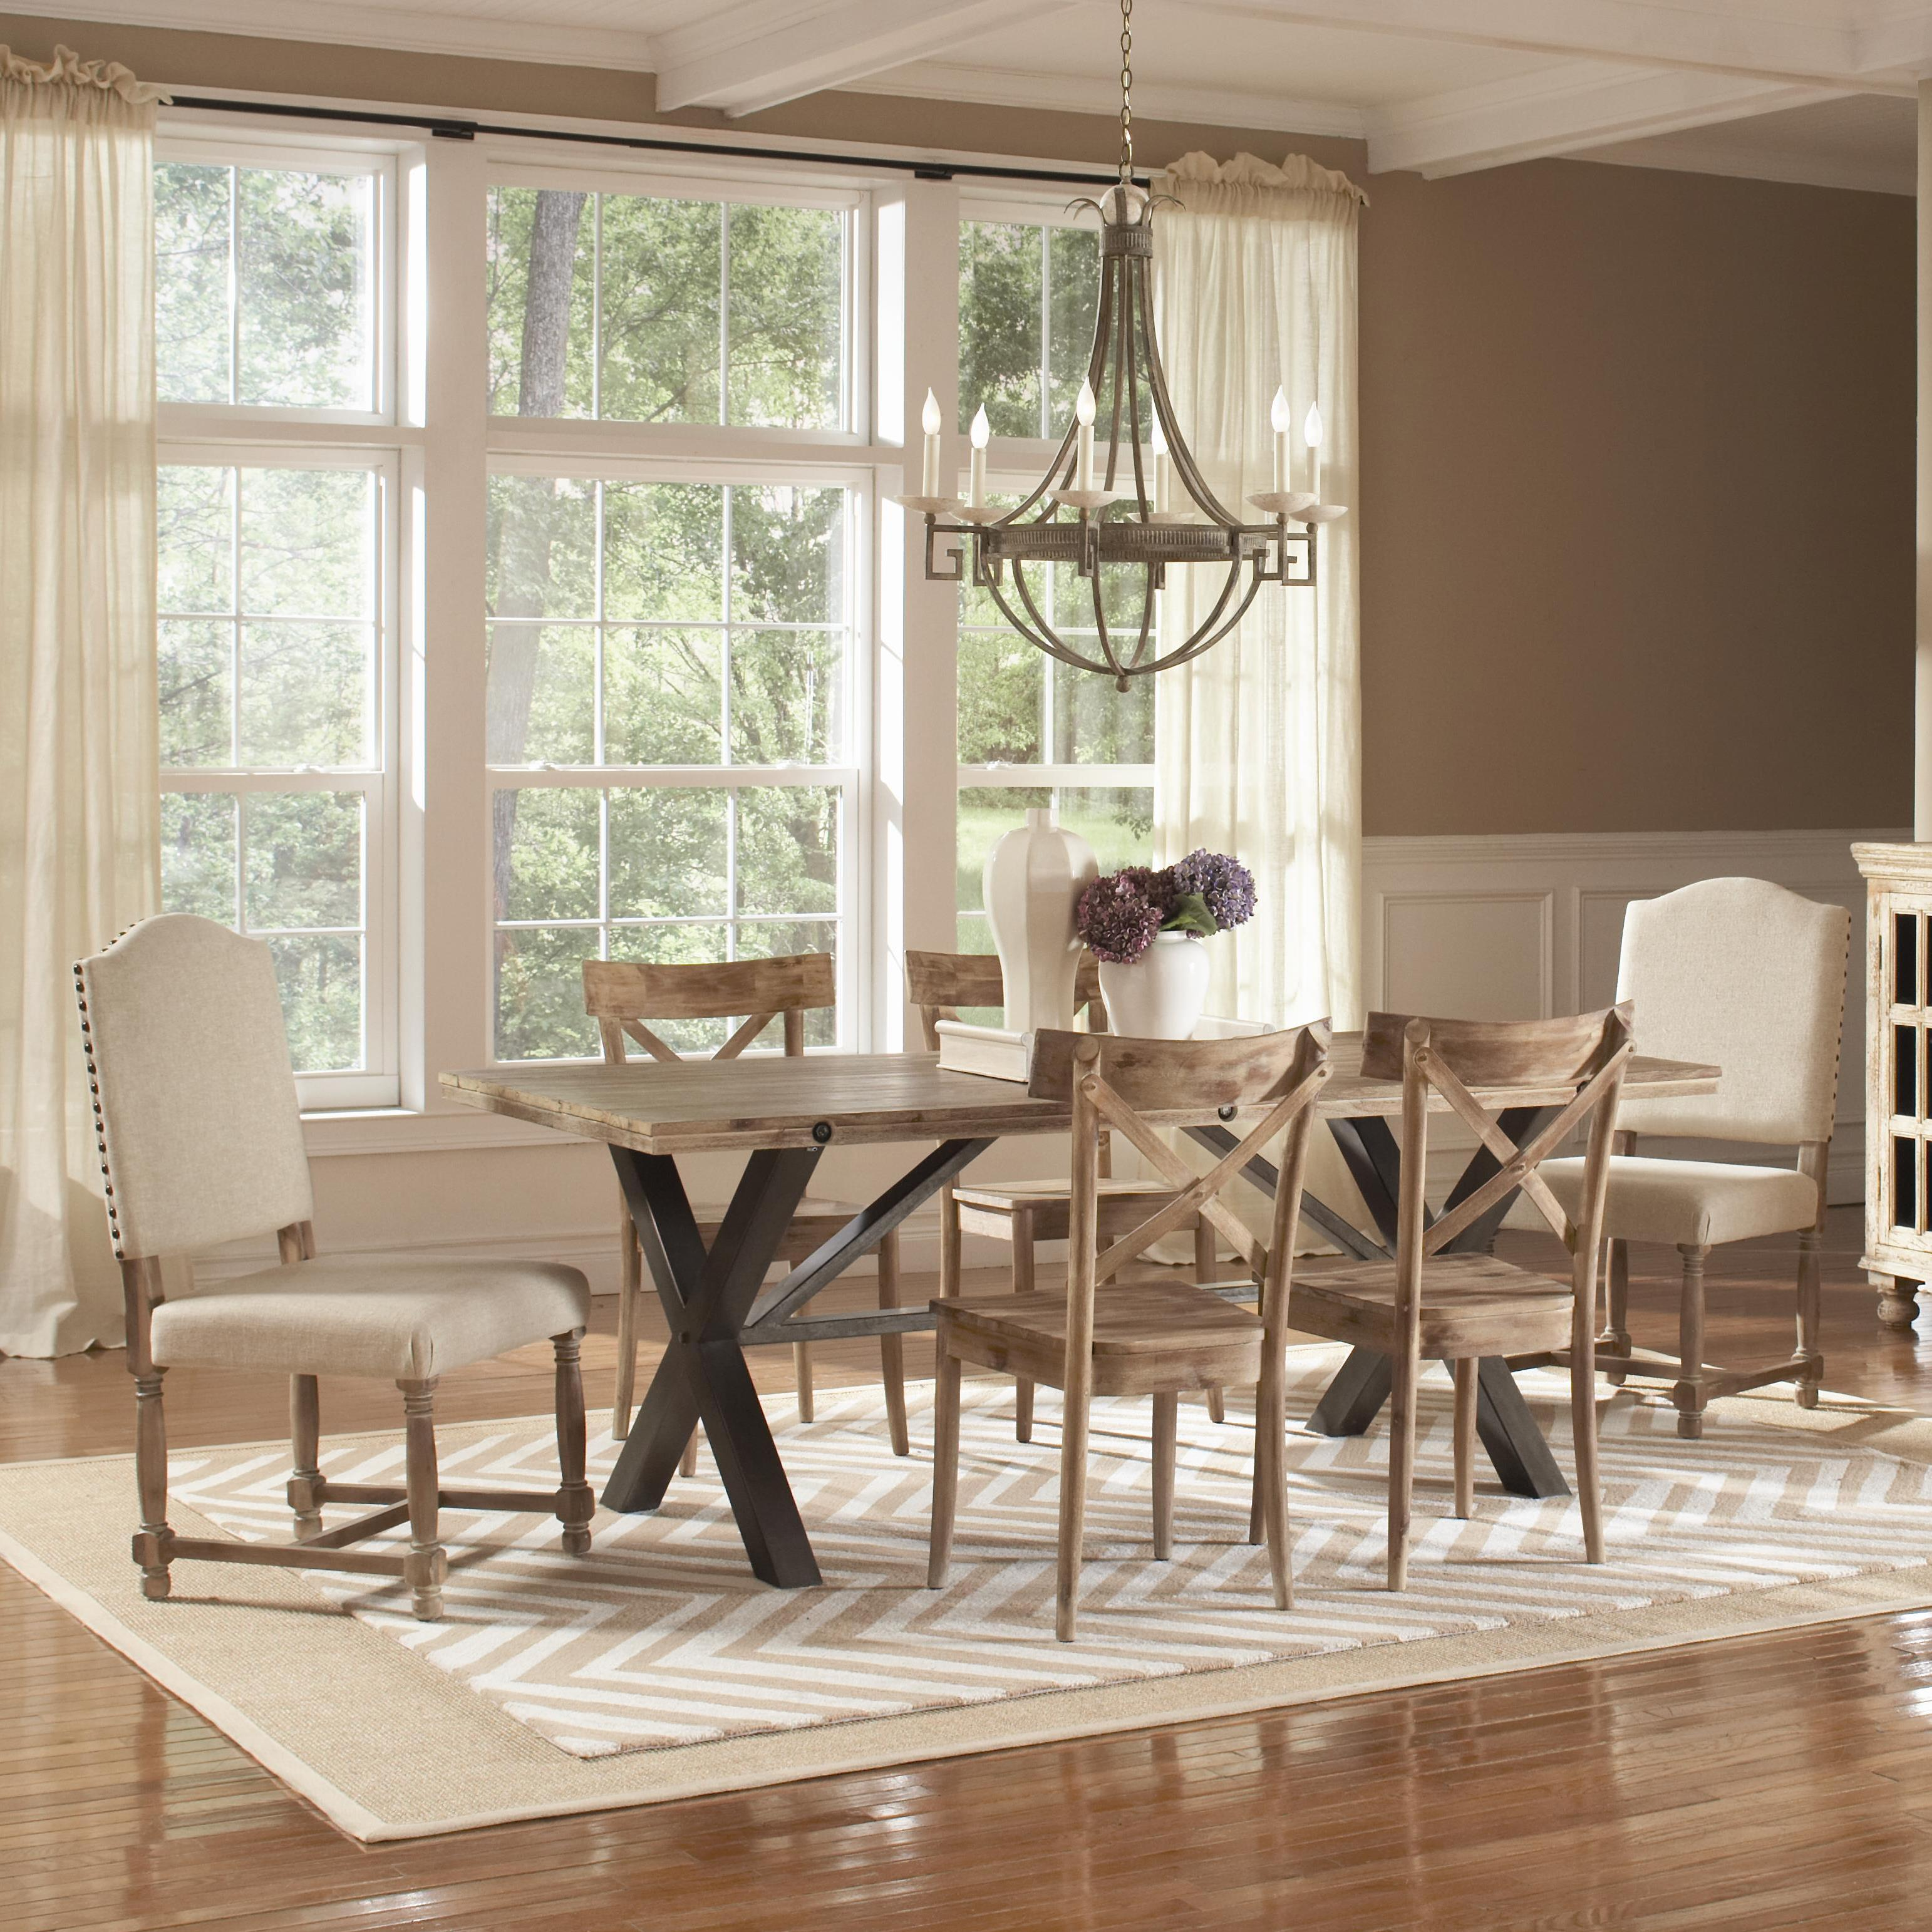 Largo callista rustic casual 7 piece rectangular table set for Dining room tables jacksonville nc